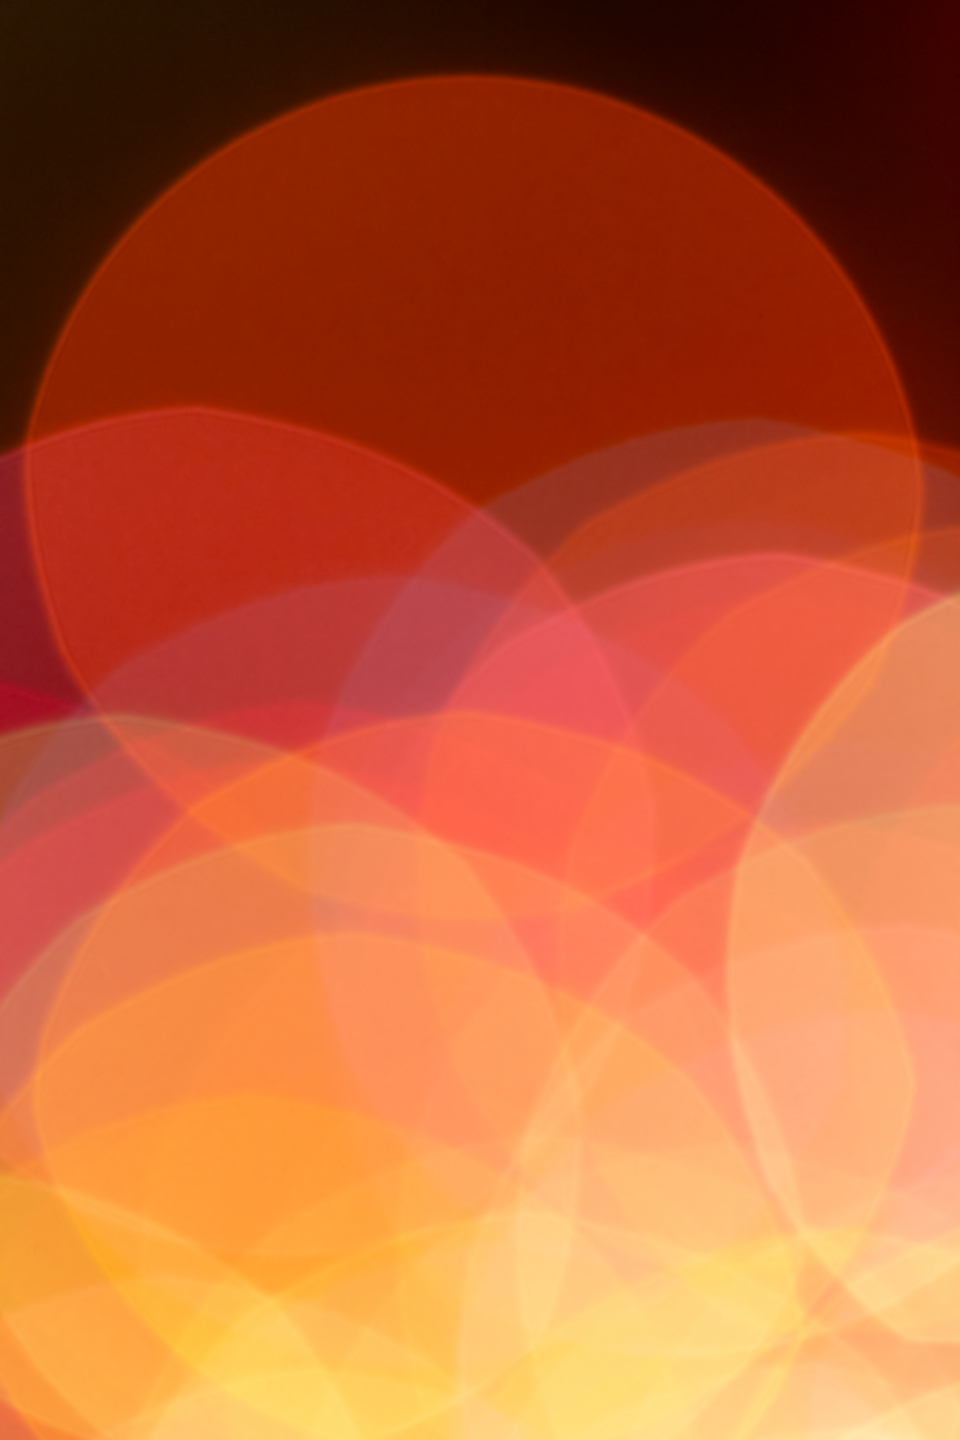 bokeh abstract art lights creative design background colorful soft focus blurred circle effect glow wallpaper red orange yellow